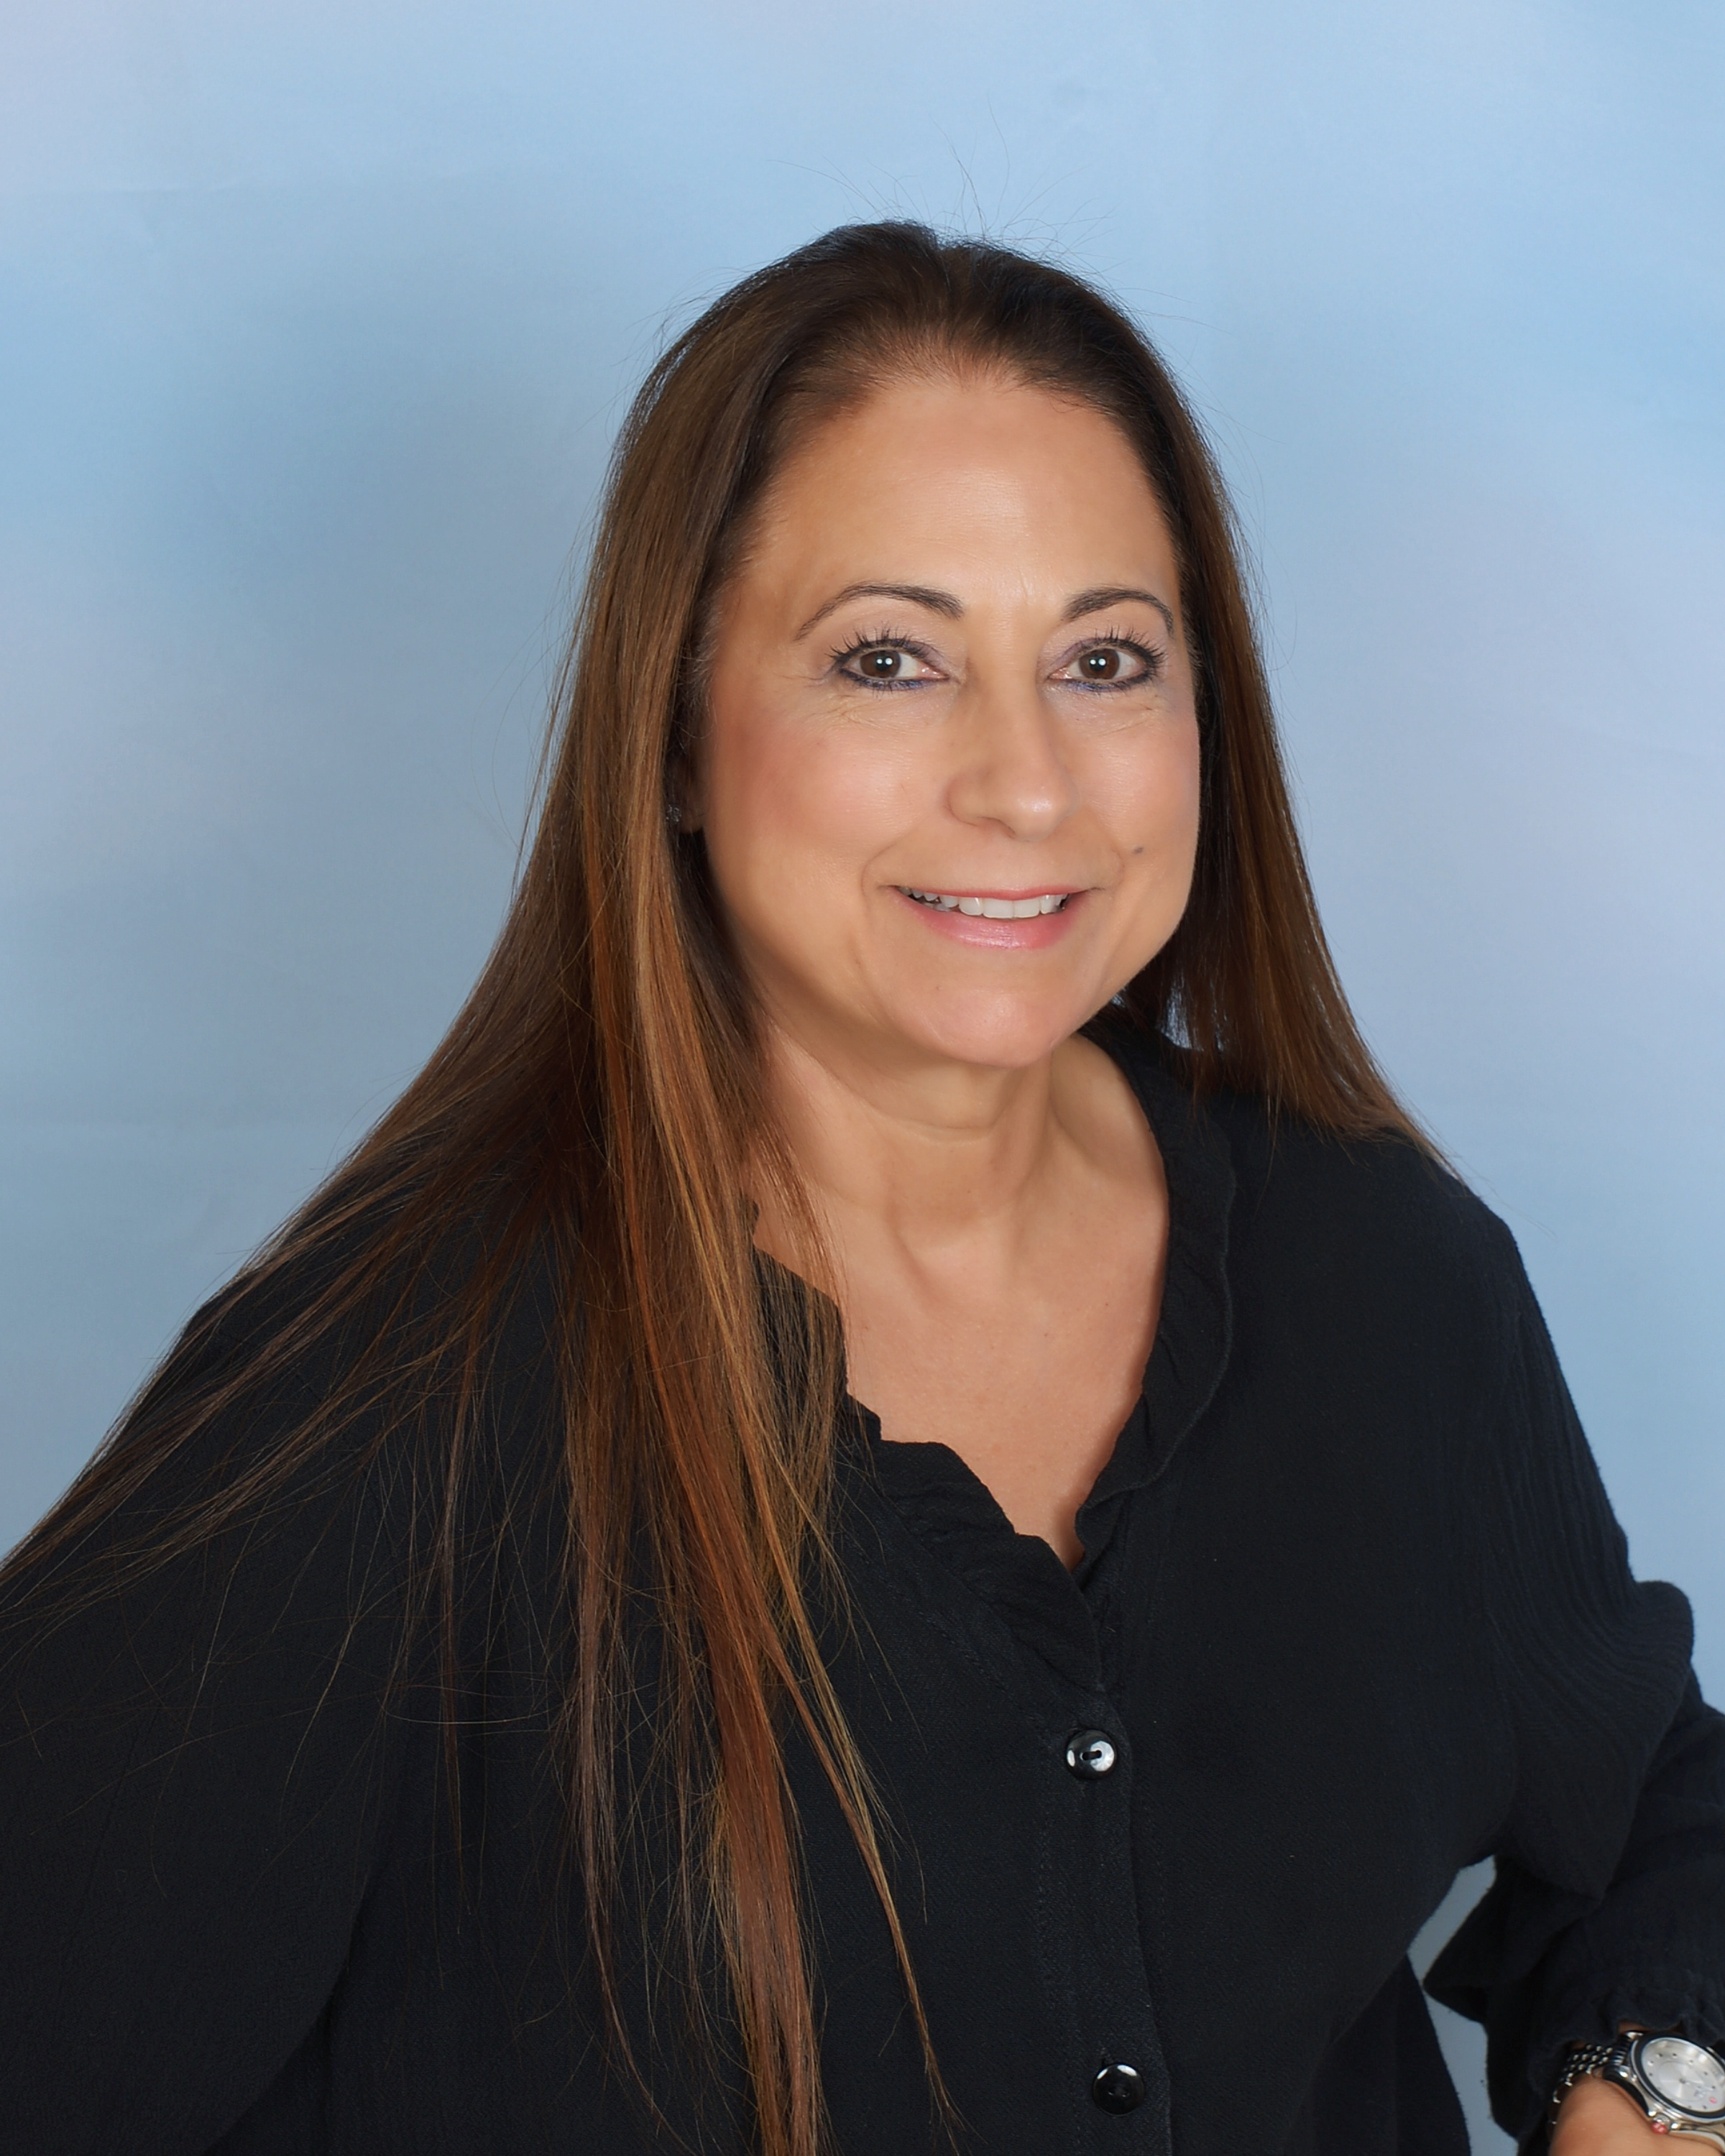 Ecolane's Business Development Director, Priscilla Vargas, Appointed to APTA Subcommittee Chairperson